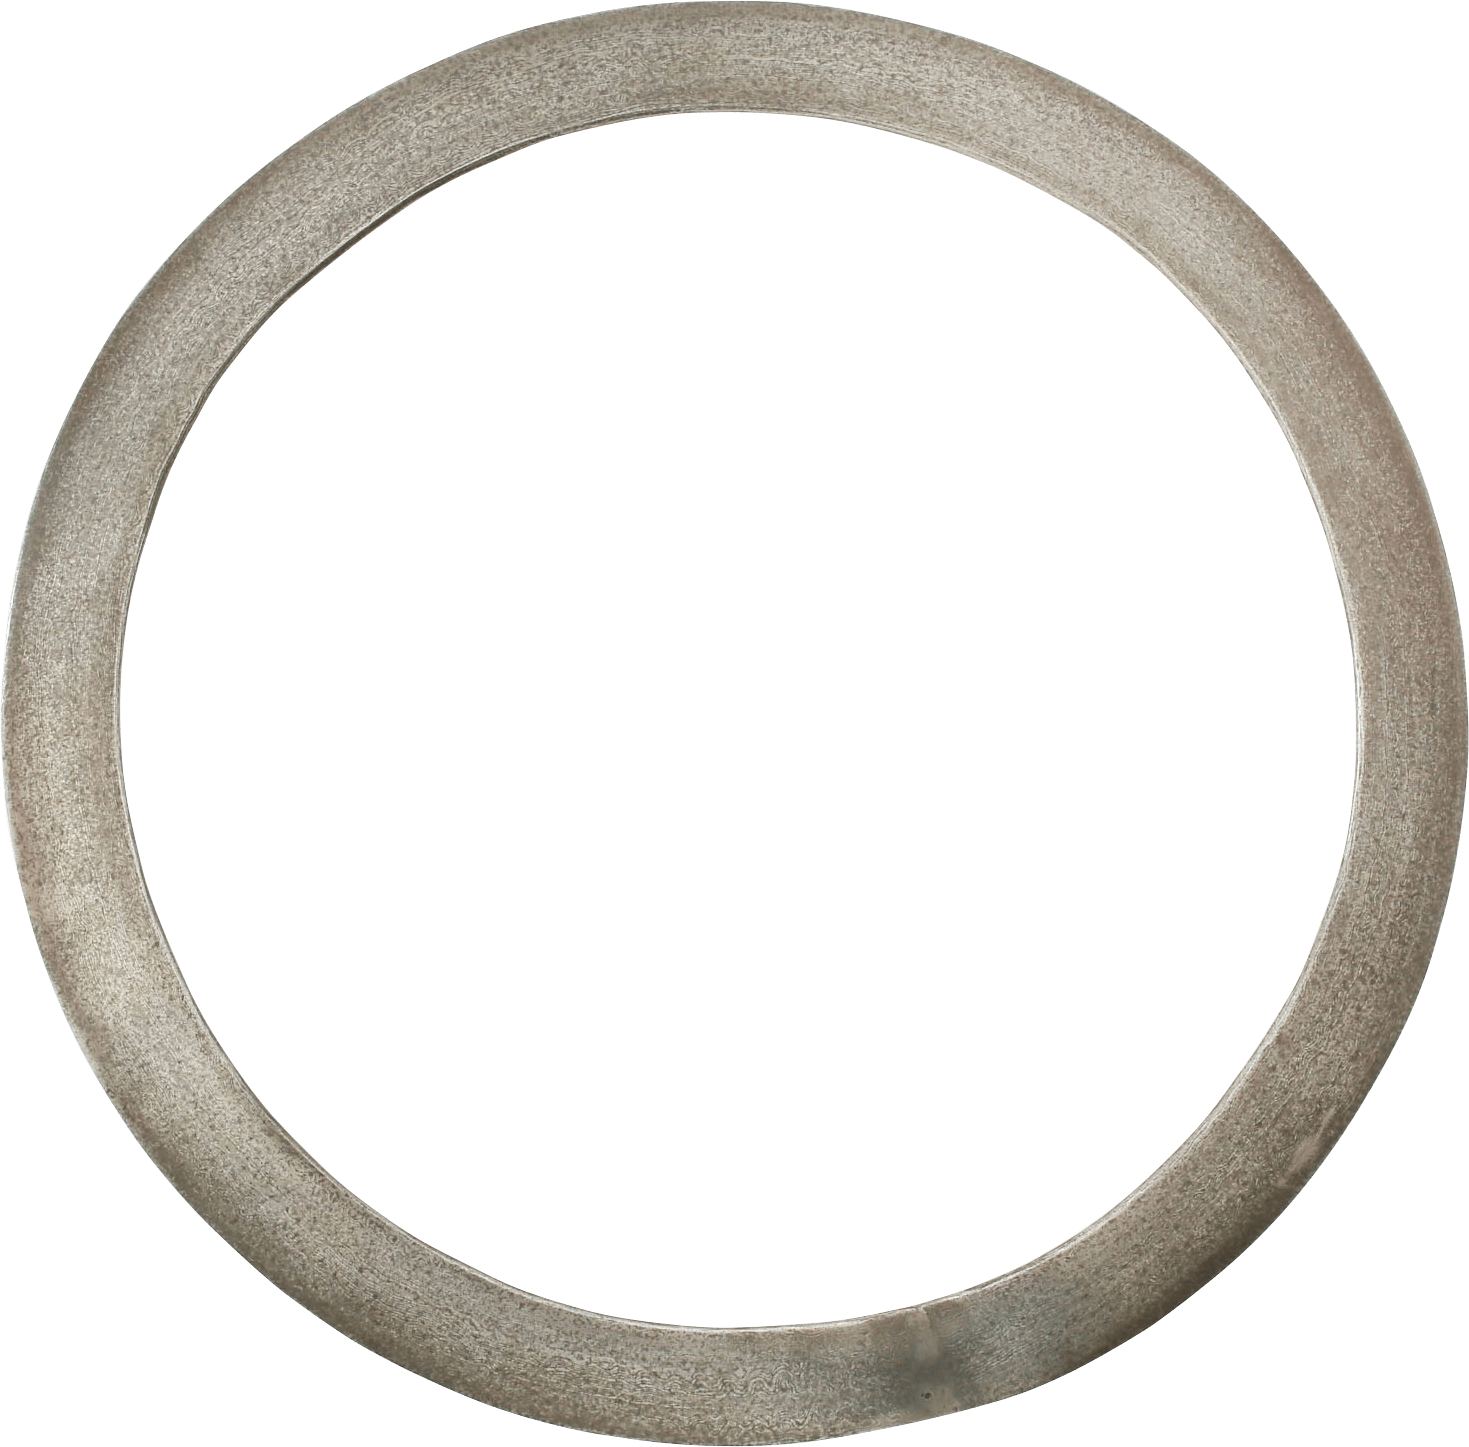 INDIAN (SIKH) THROWING RING CHAKRAM - Product